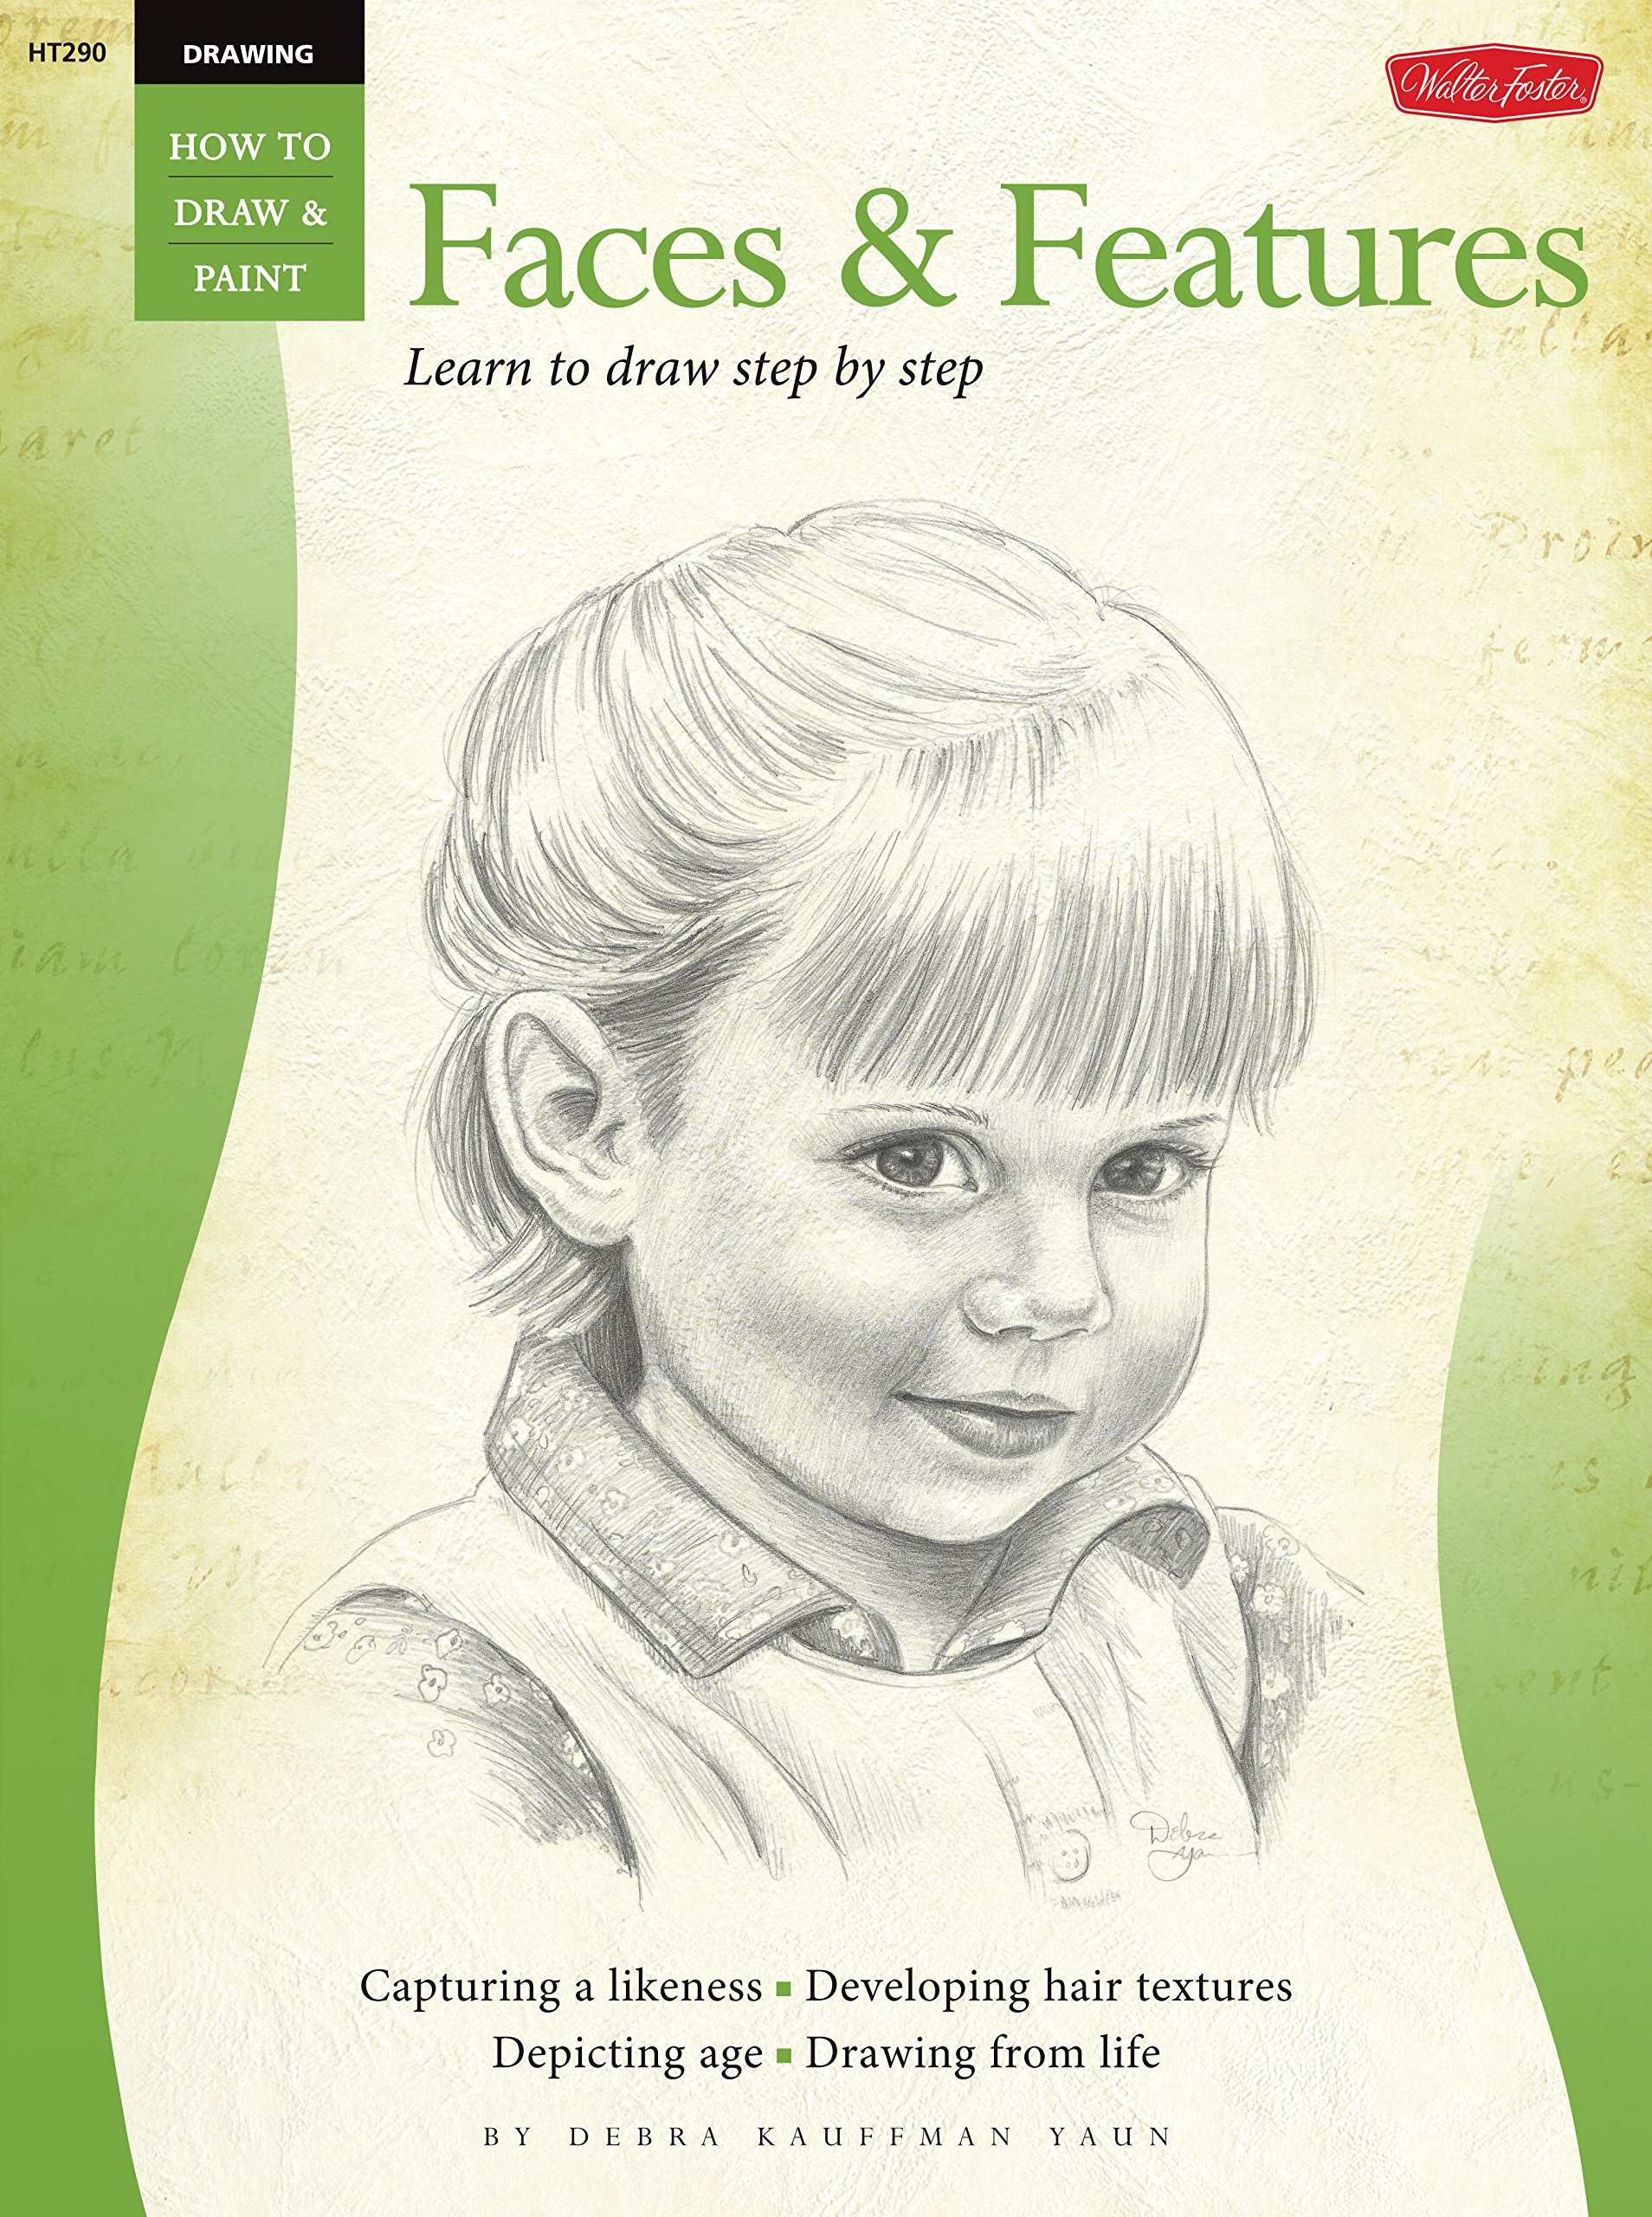 1908x2560 Drawing Faces Amp Features Learn To Draw Step By Step (How To Draw